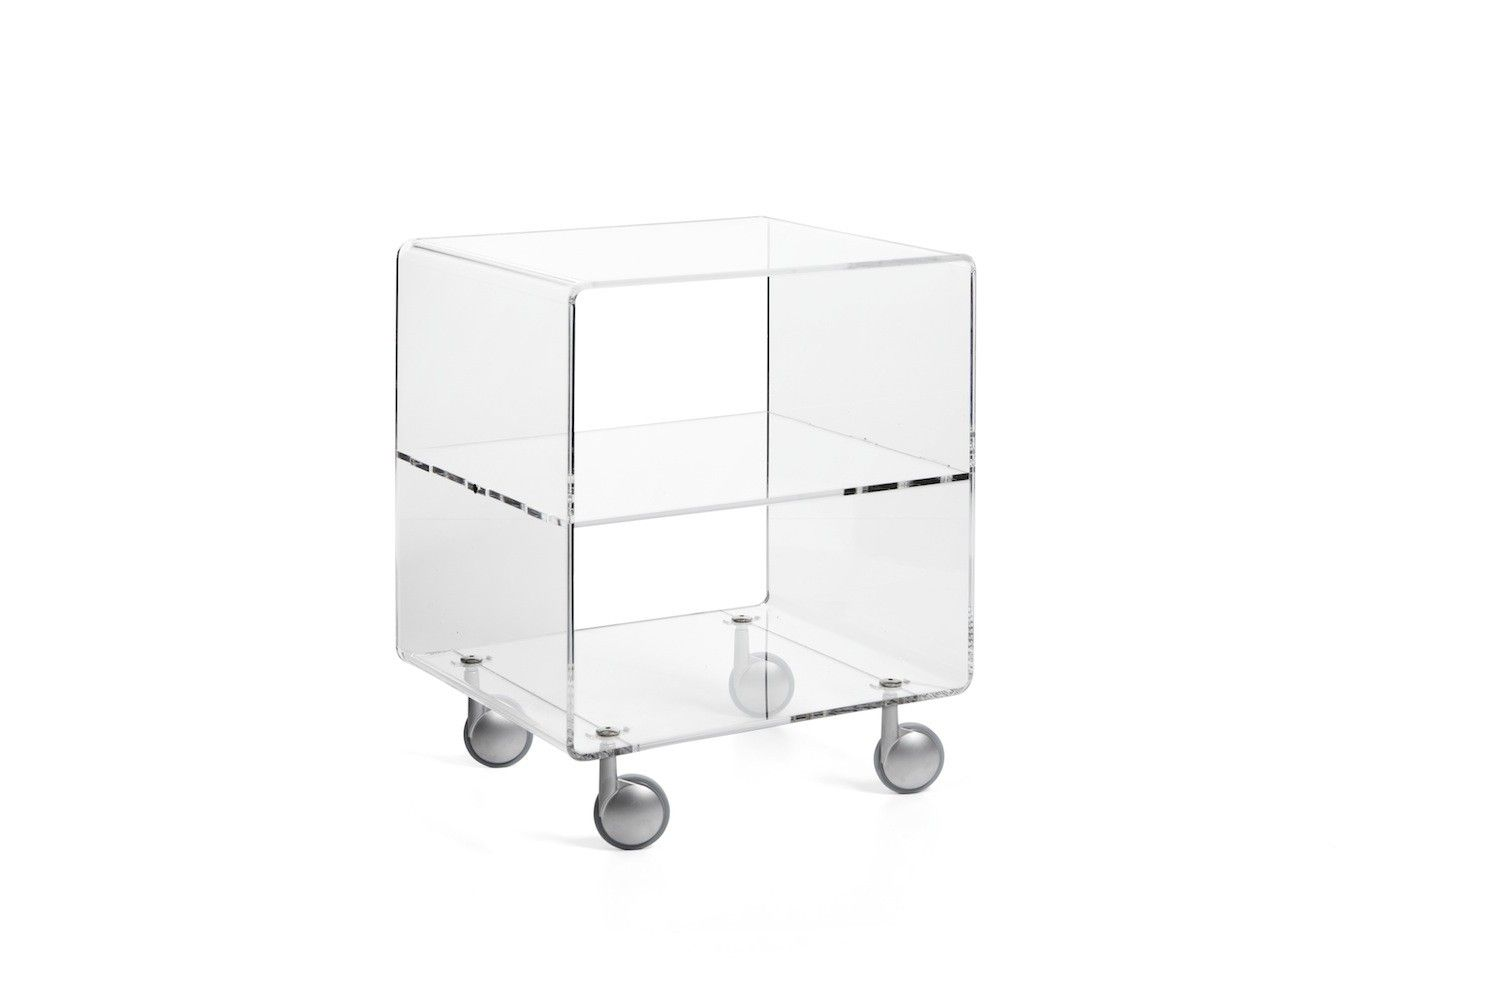 Porta Tv Plexiglass.Carrello Porta Tv In Plexiglass Trasparente Andy 3